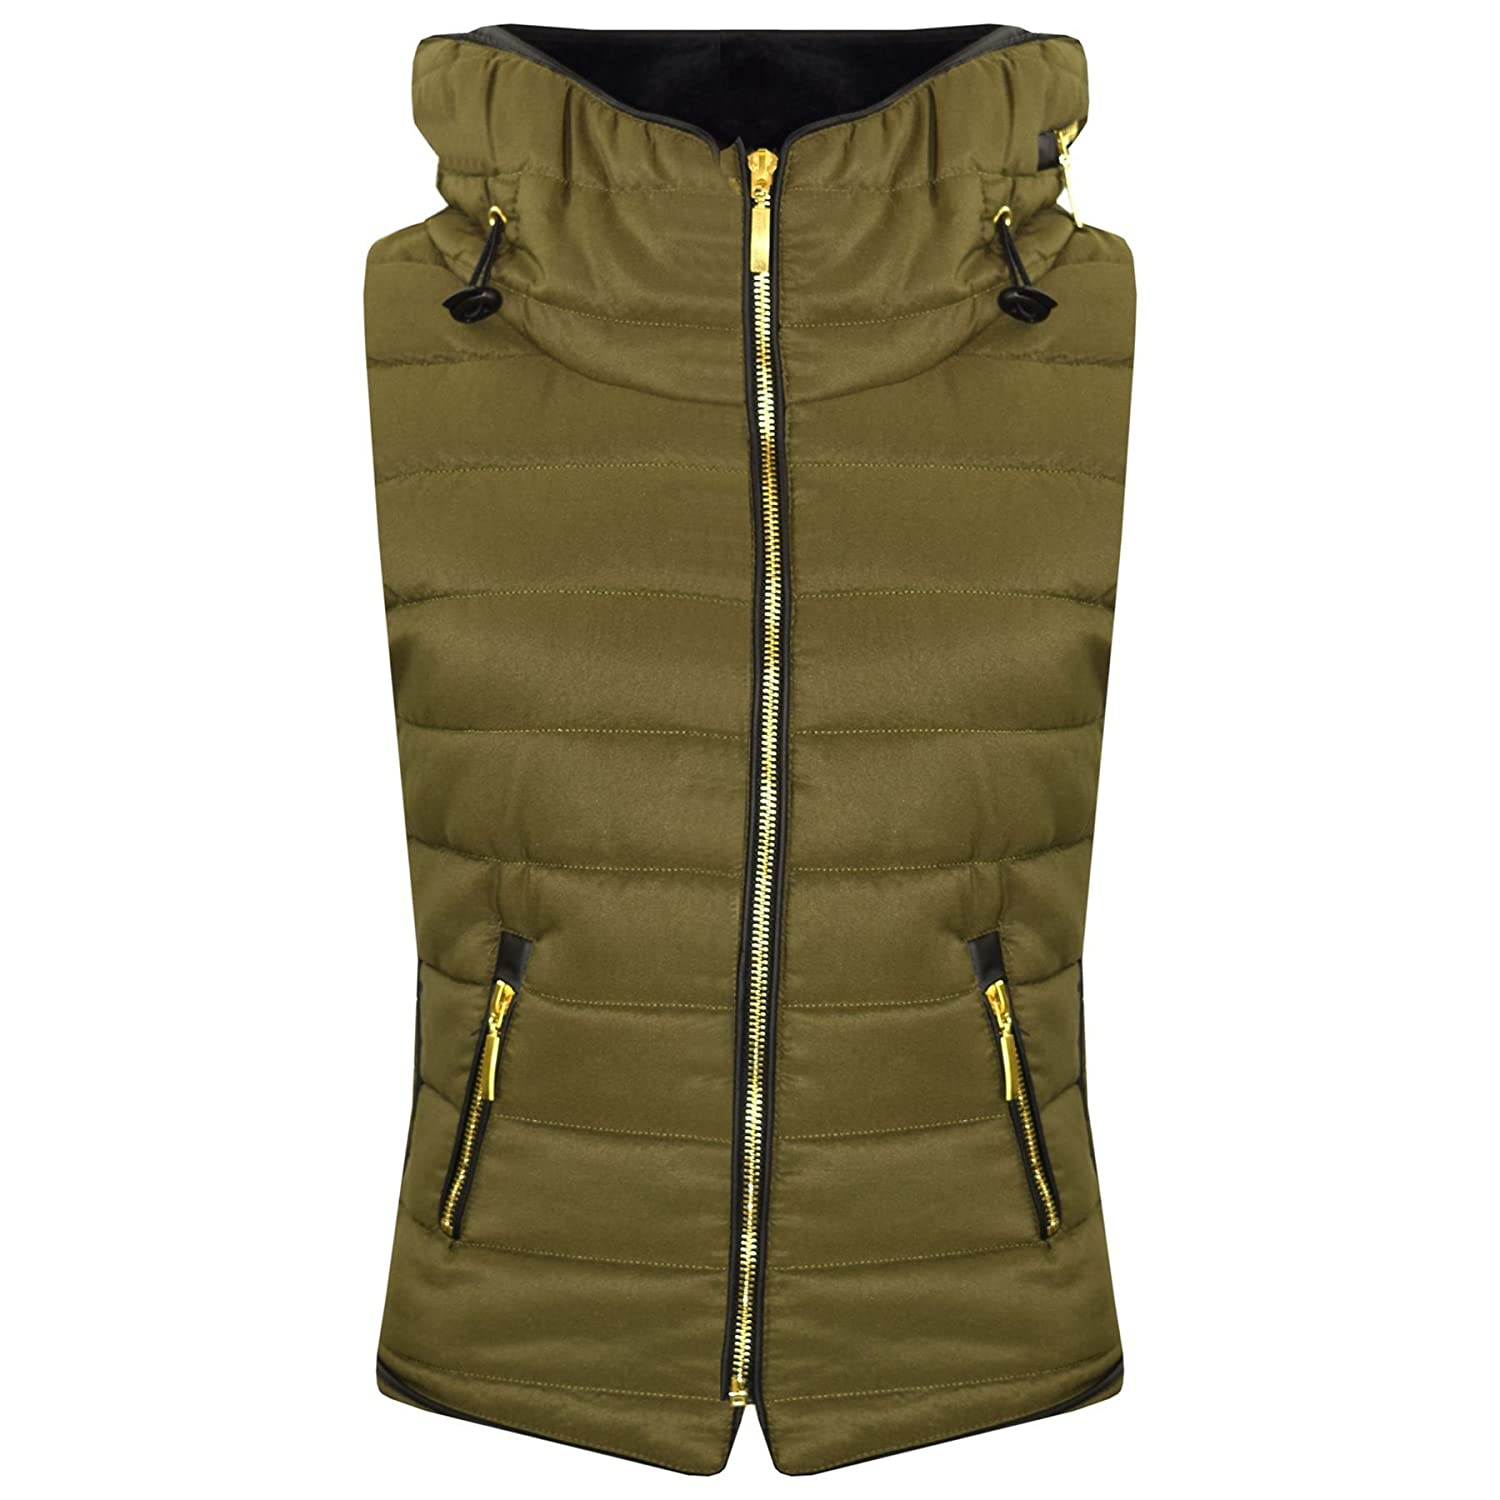 A2Z 4 Kids® Kids Girls Boys Designer's Sleeveless Hooded Padded Quilted Puffer Bubble Gilet Bodywarmer Jackets 5 6 7 8 9 10 11 12 13 Years